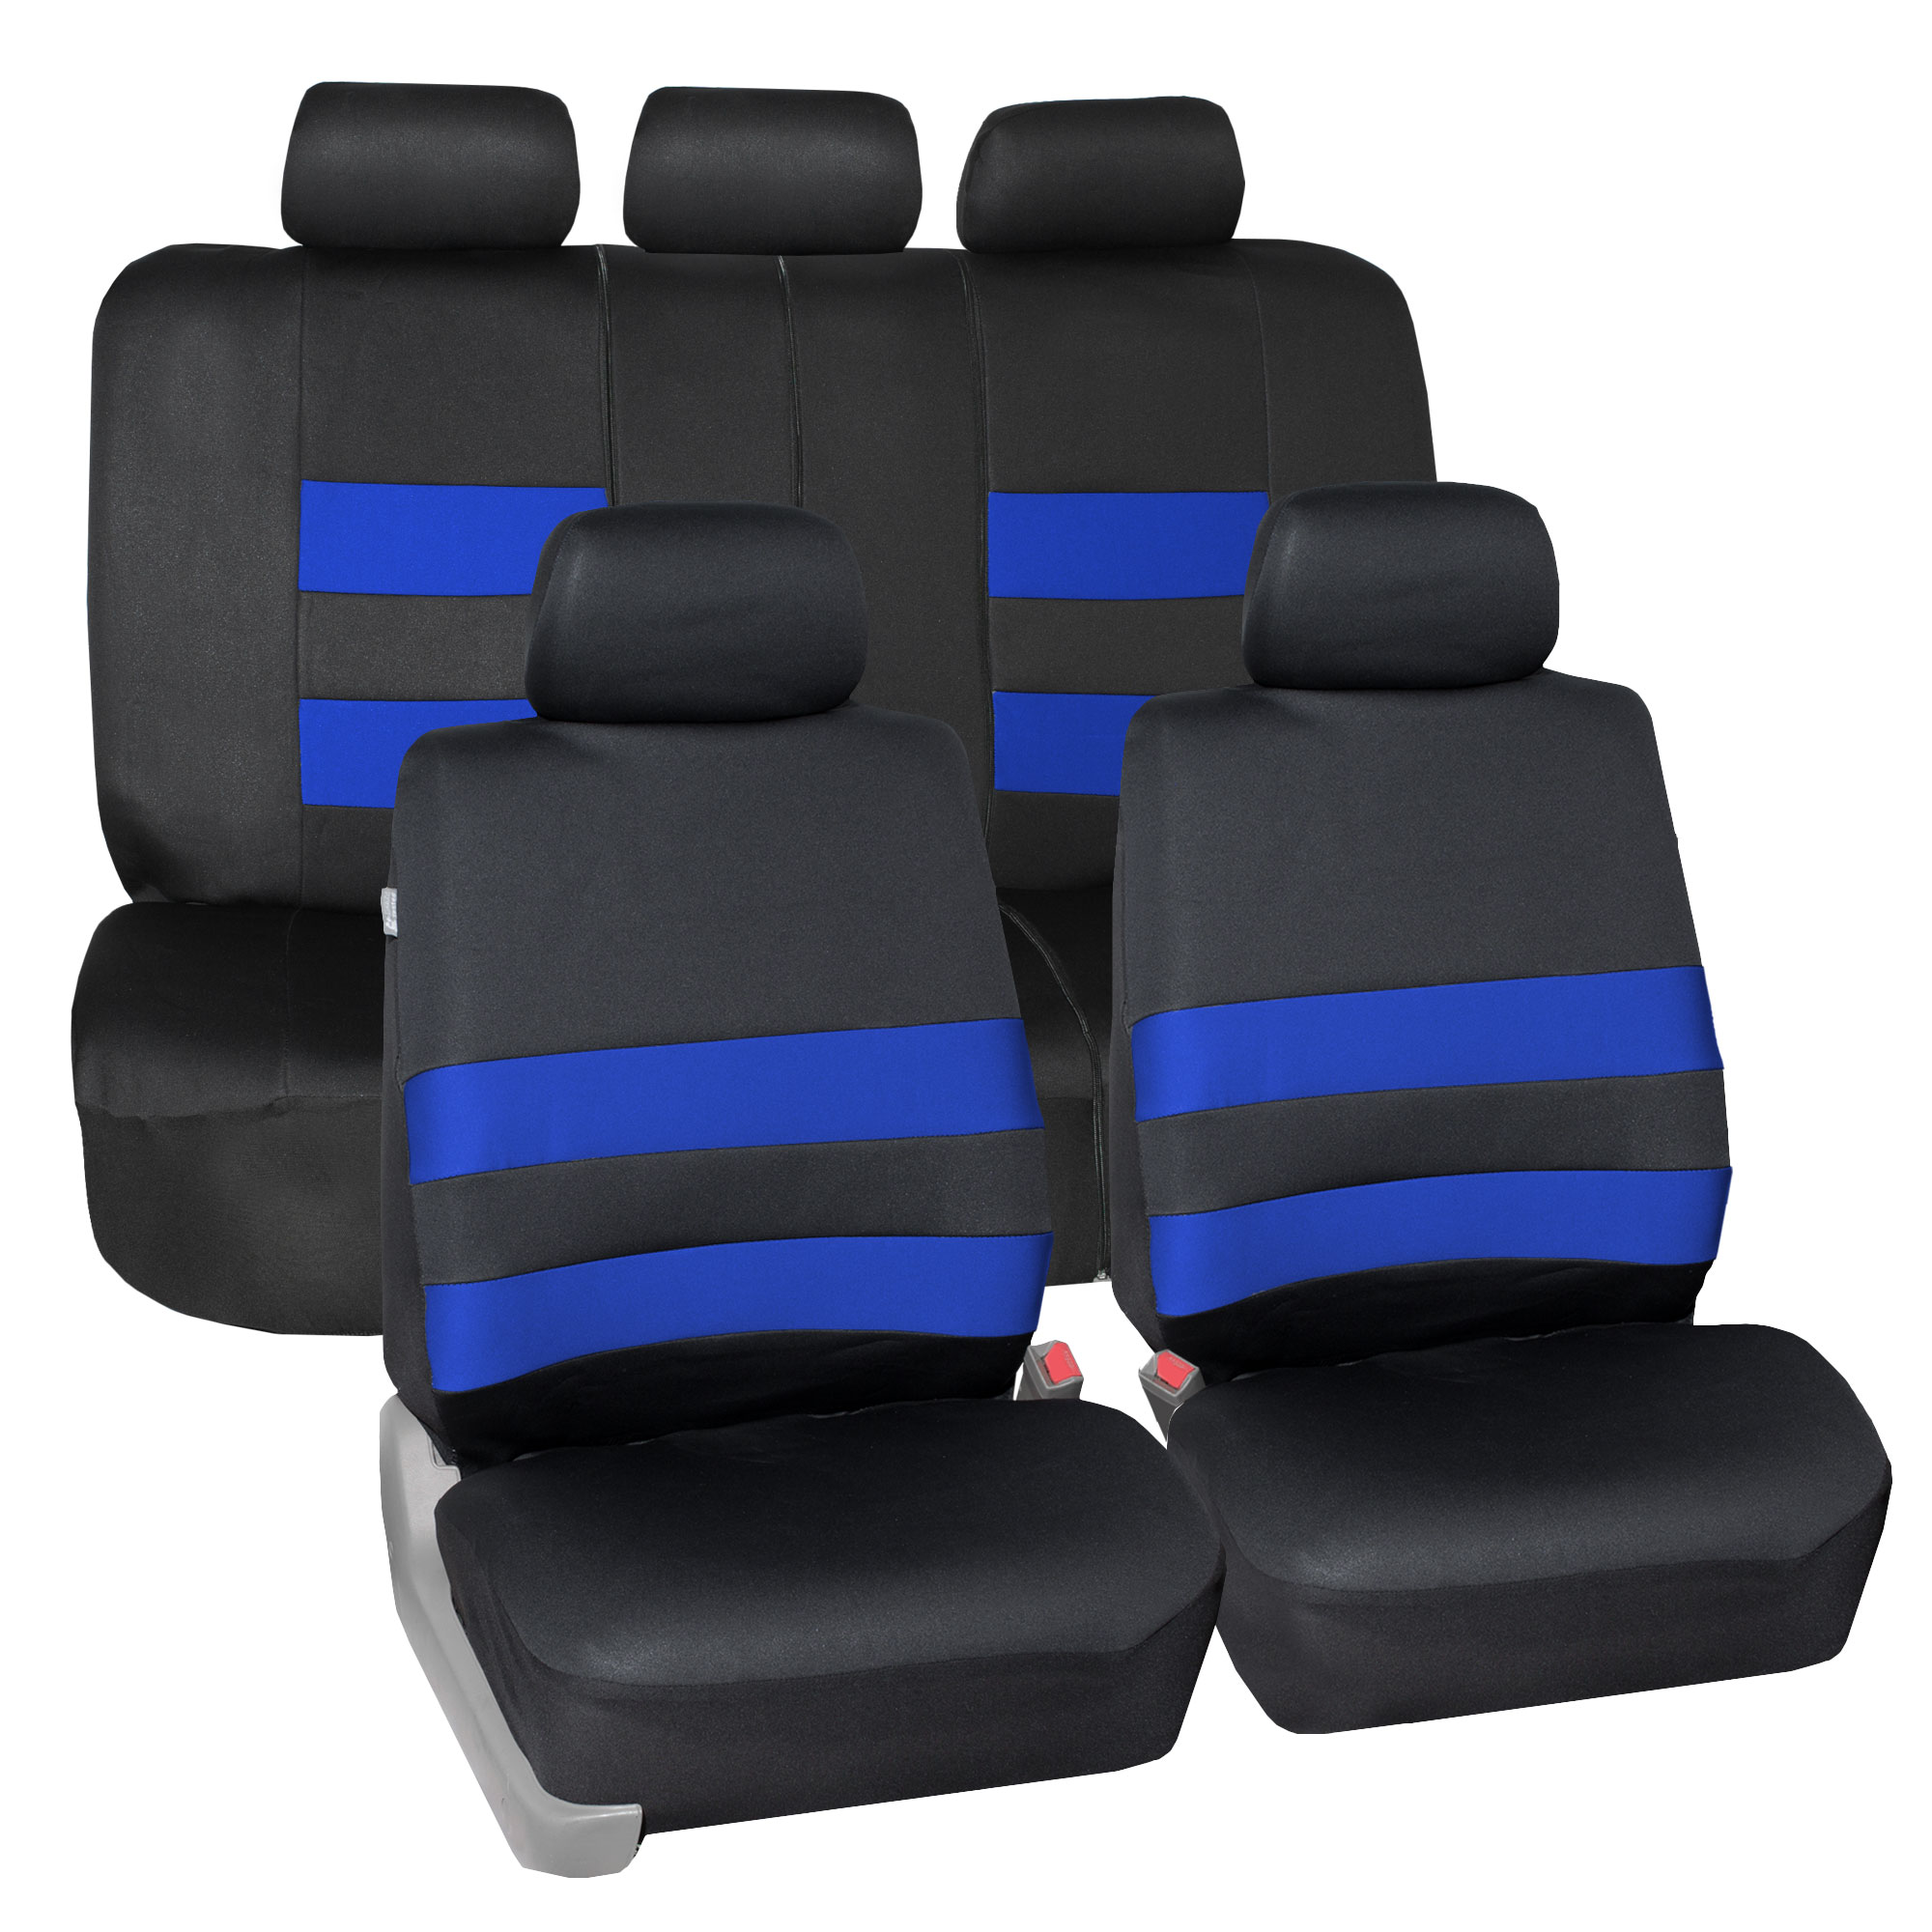 FH Group Premium Neoprene Seat covers, Airbag & split  Compatible, Full Seat Covers with 5 Headrest Covers, 9 Colors